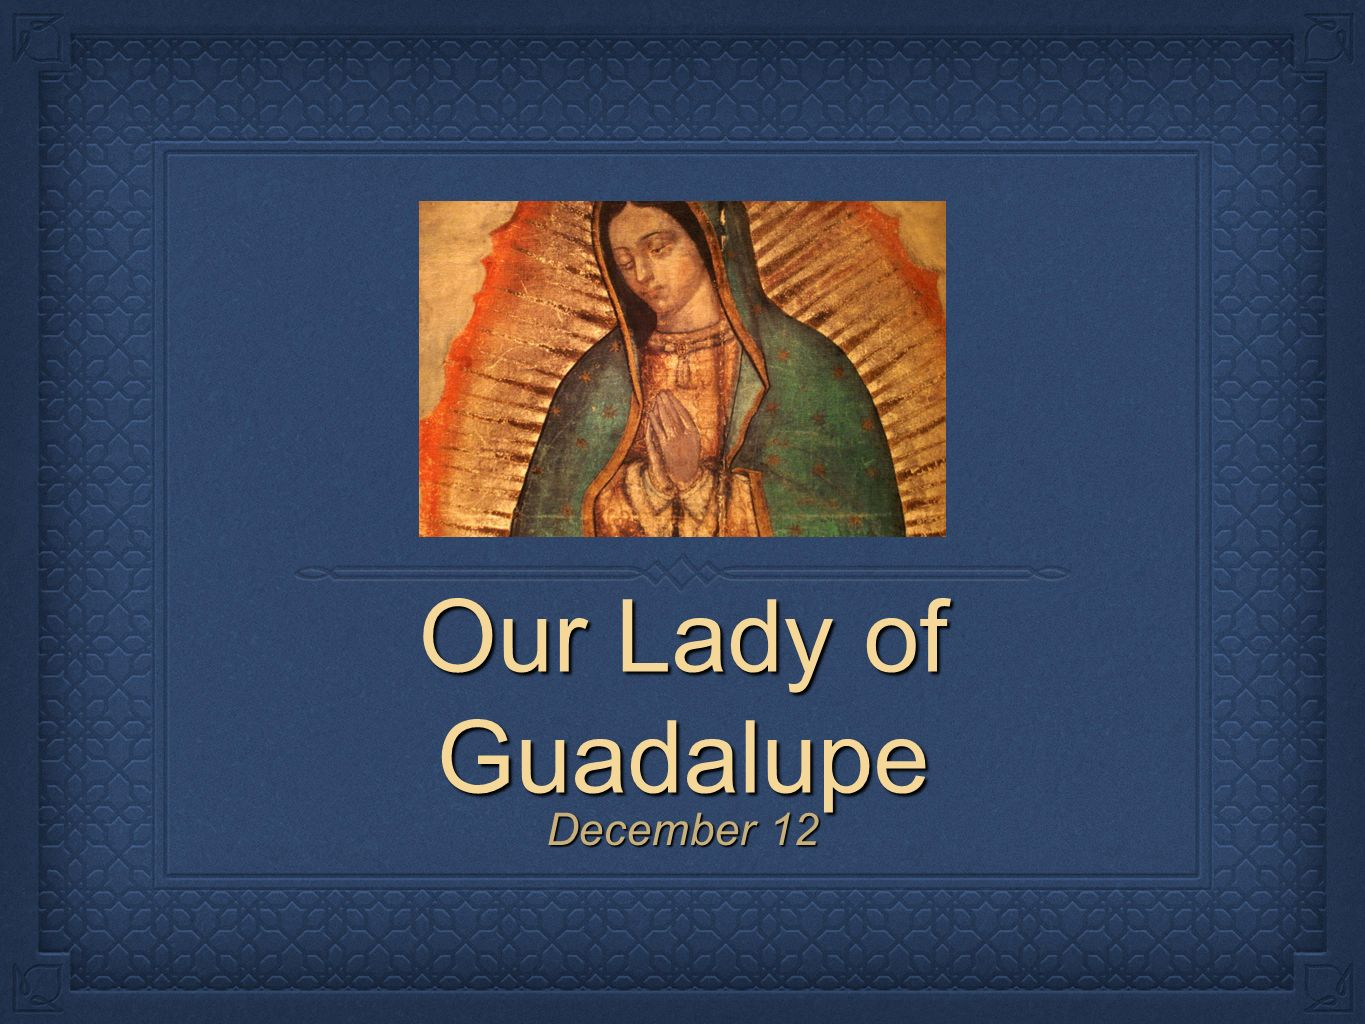 Background information on mexico - 1 Our Lady Of Guadalupe December 12